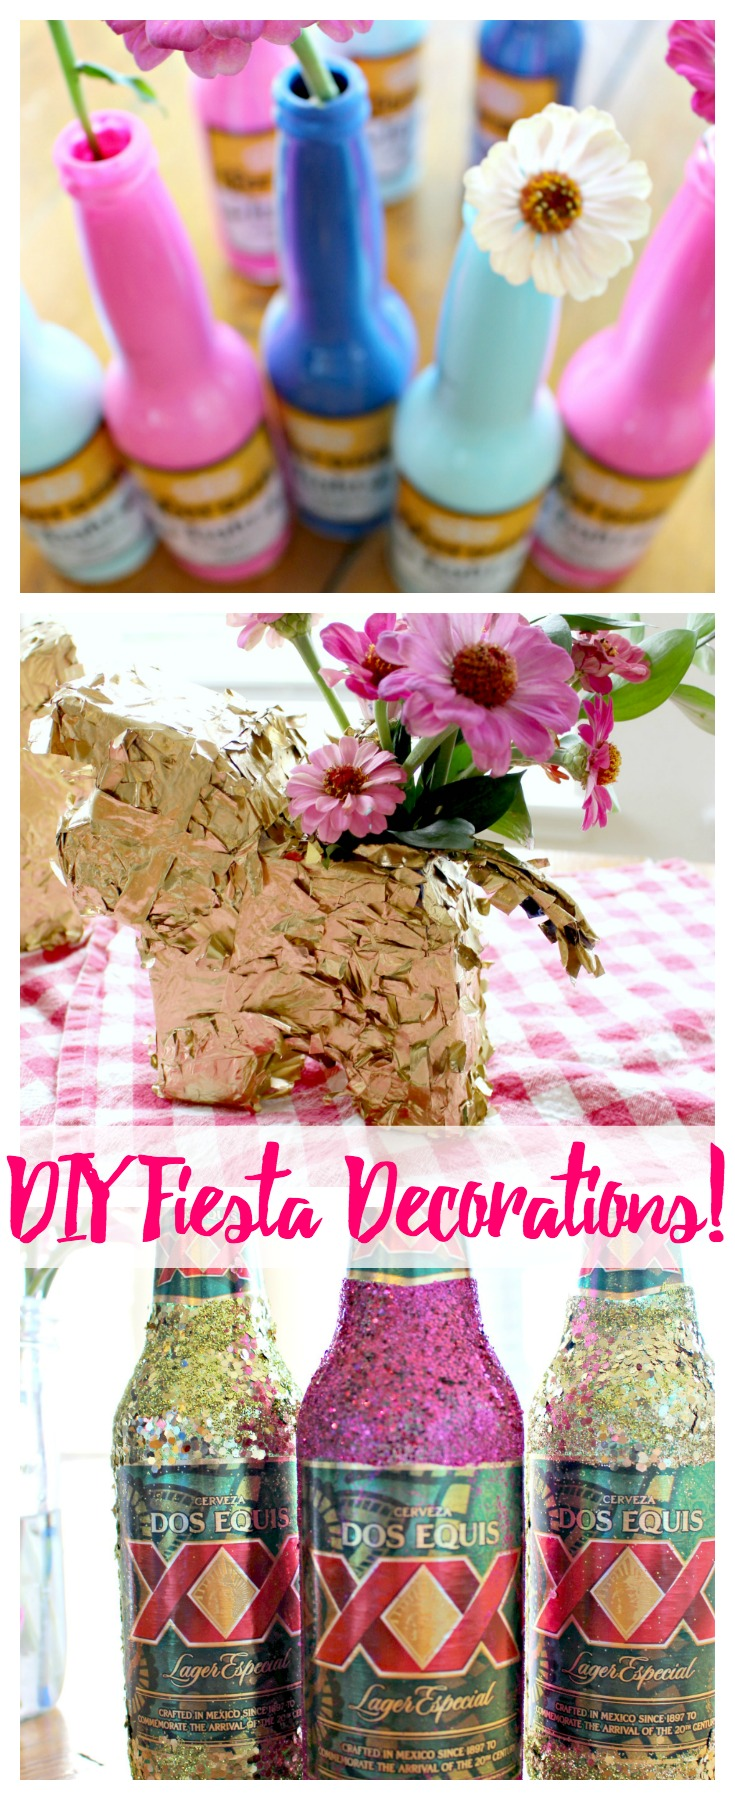 3 DIY Decor Ideas for a Cinco de Mayo Fiesta!